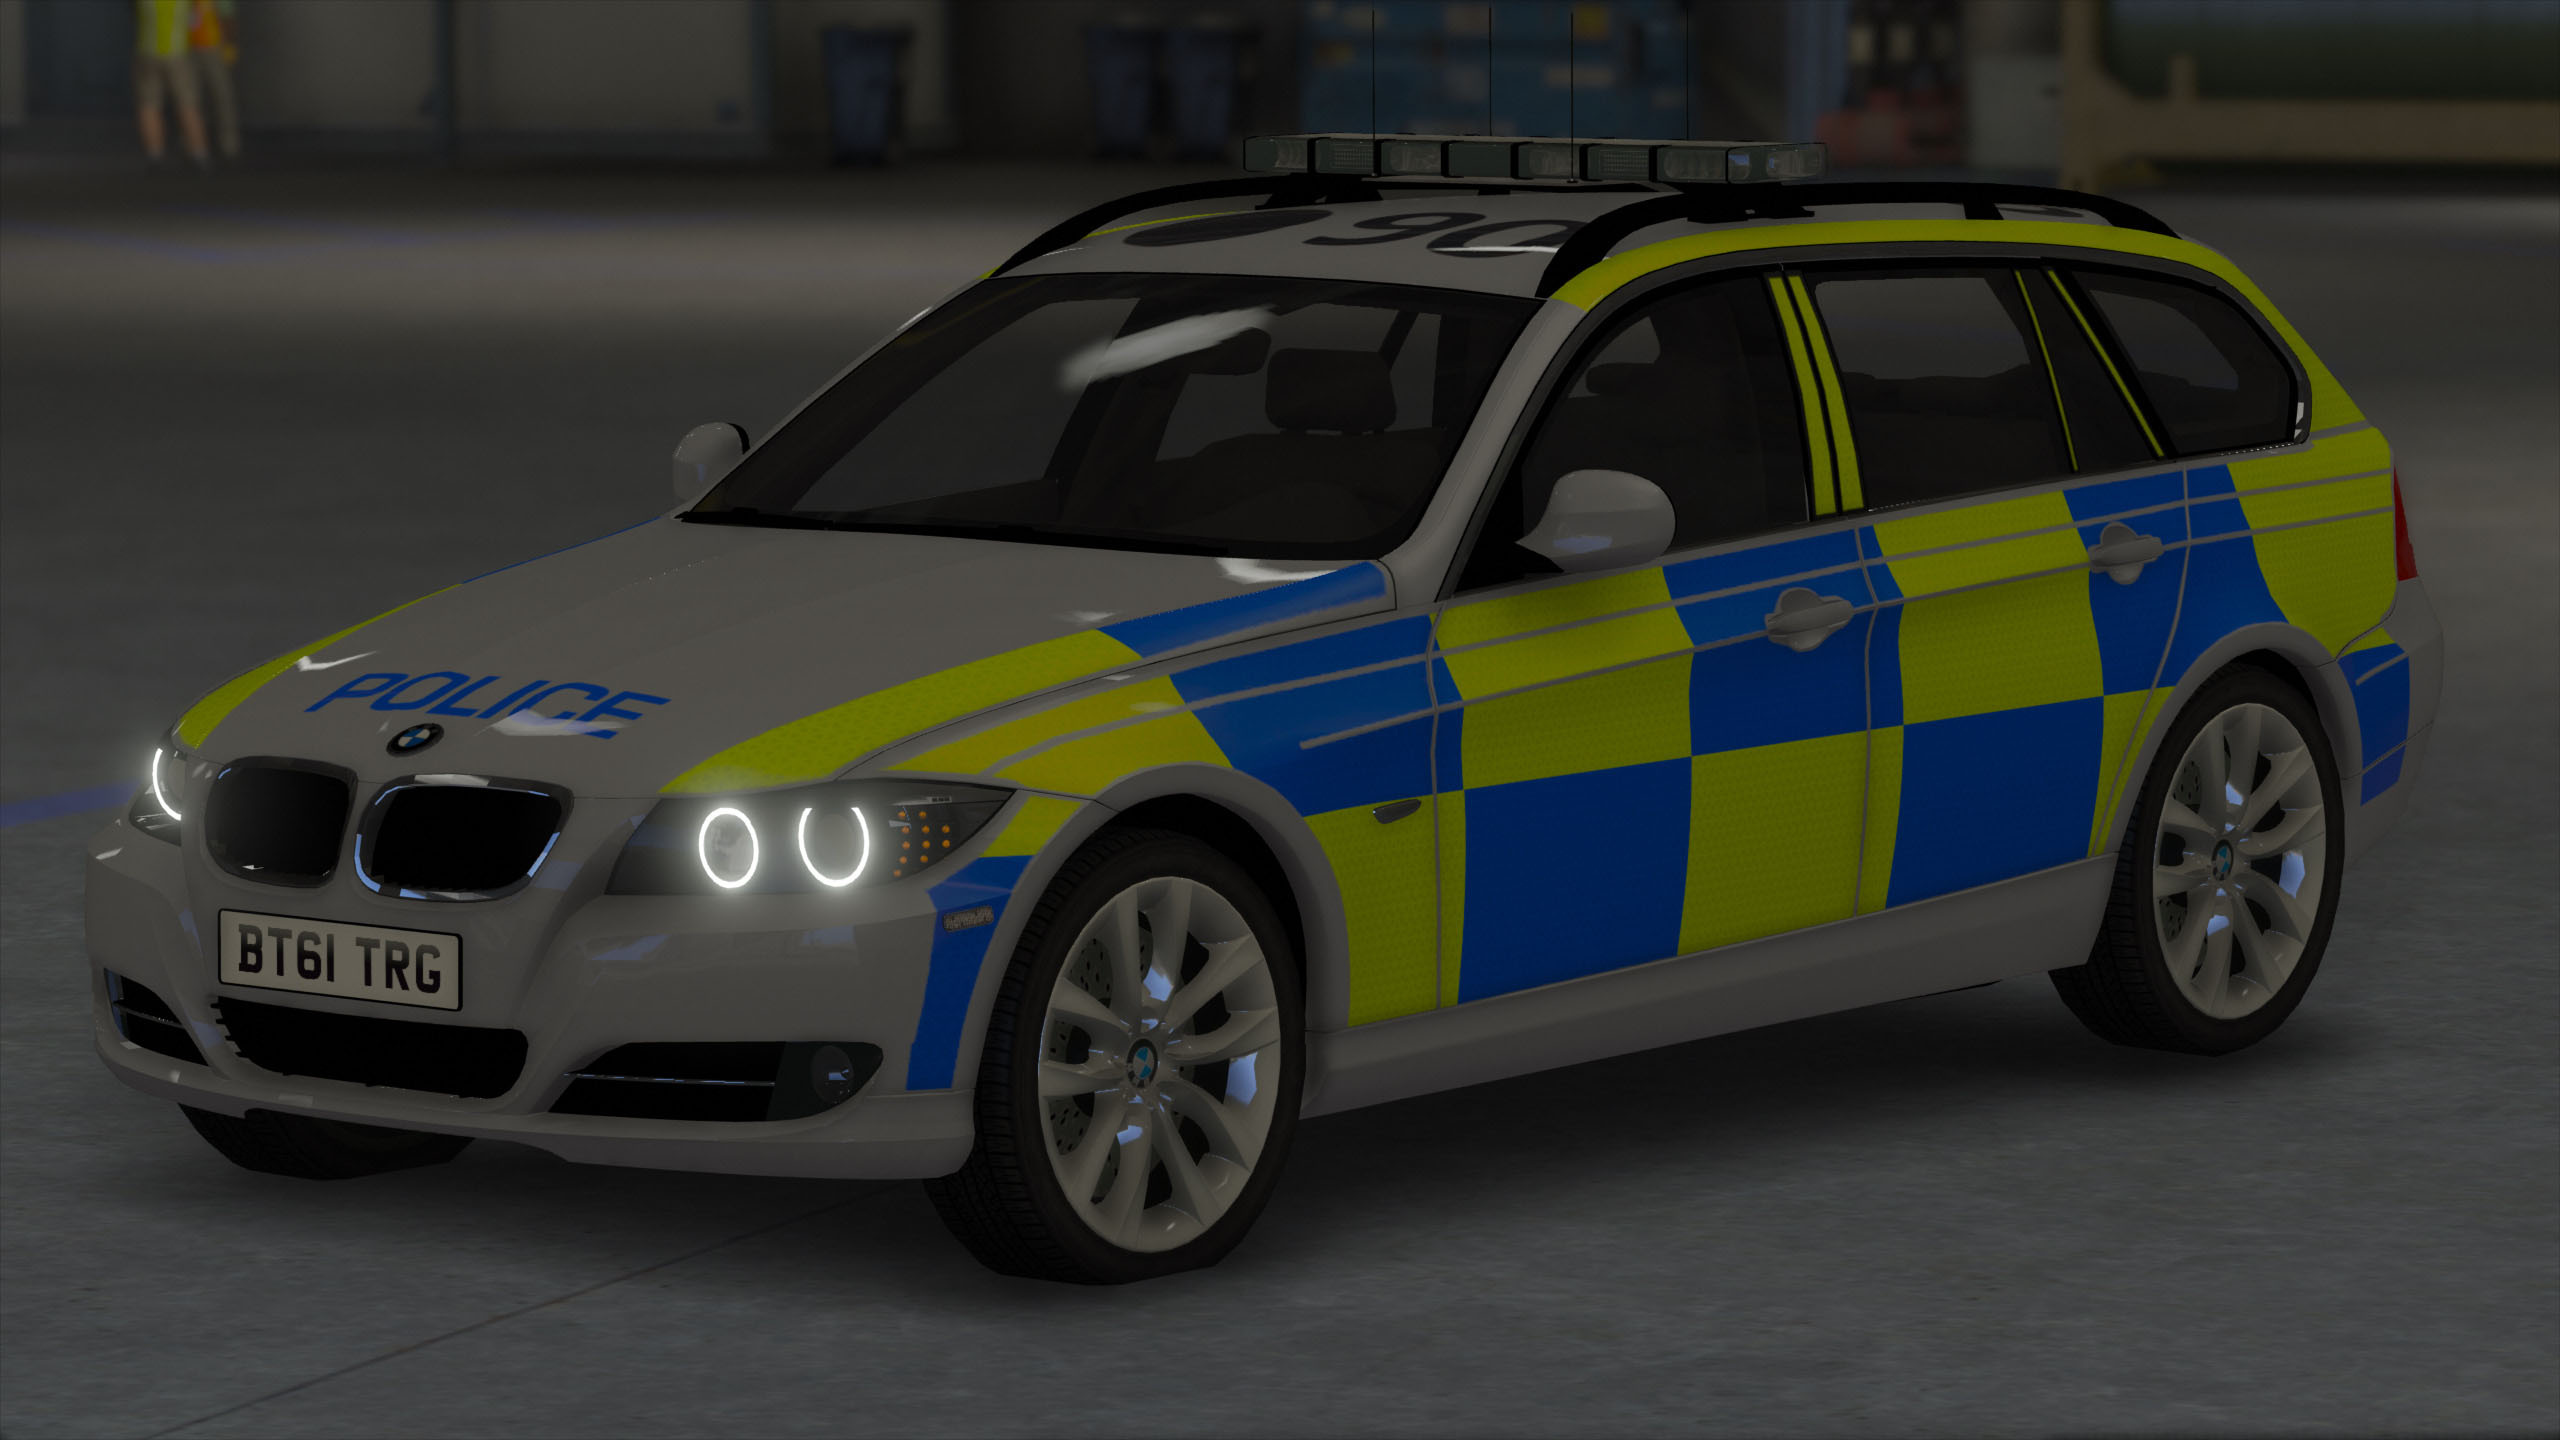 Bmw 5 series touring police 2013 uk wallpapers and hd images car - 5c3150 Gta5 2016 04 13 11 31 52 146